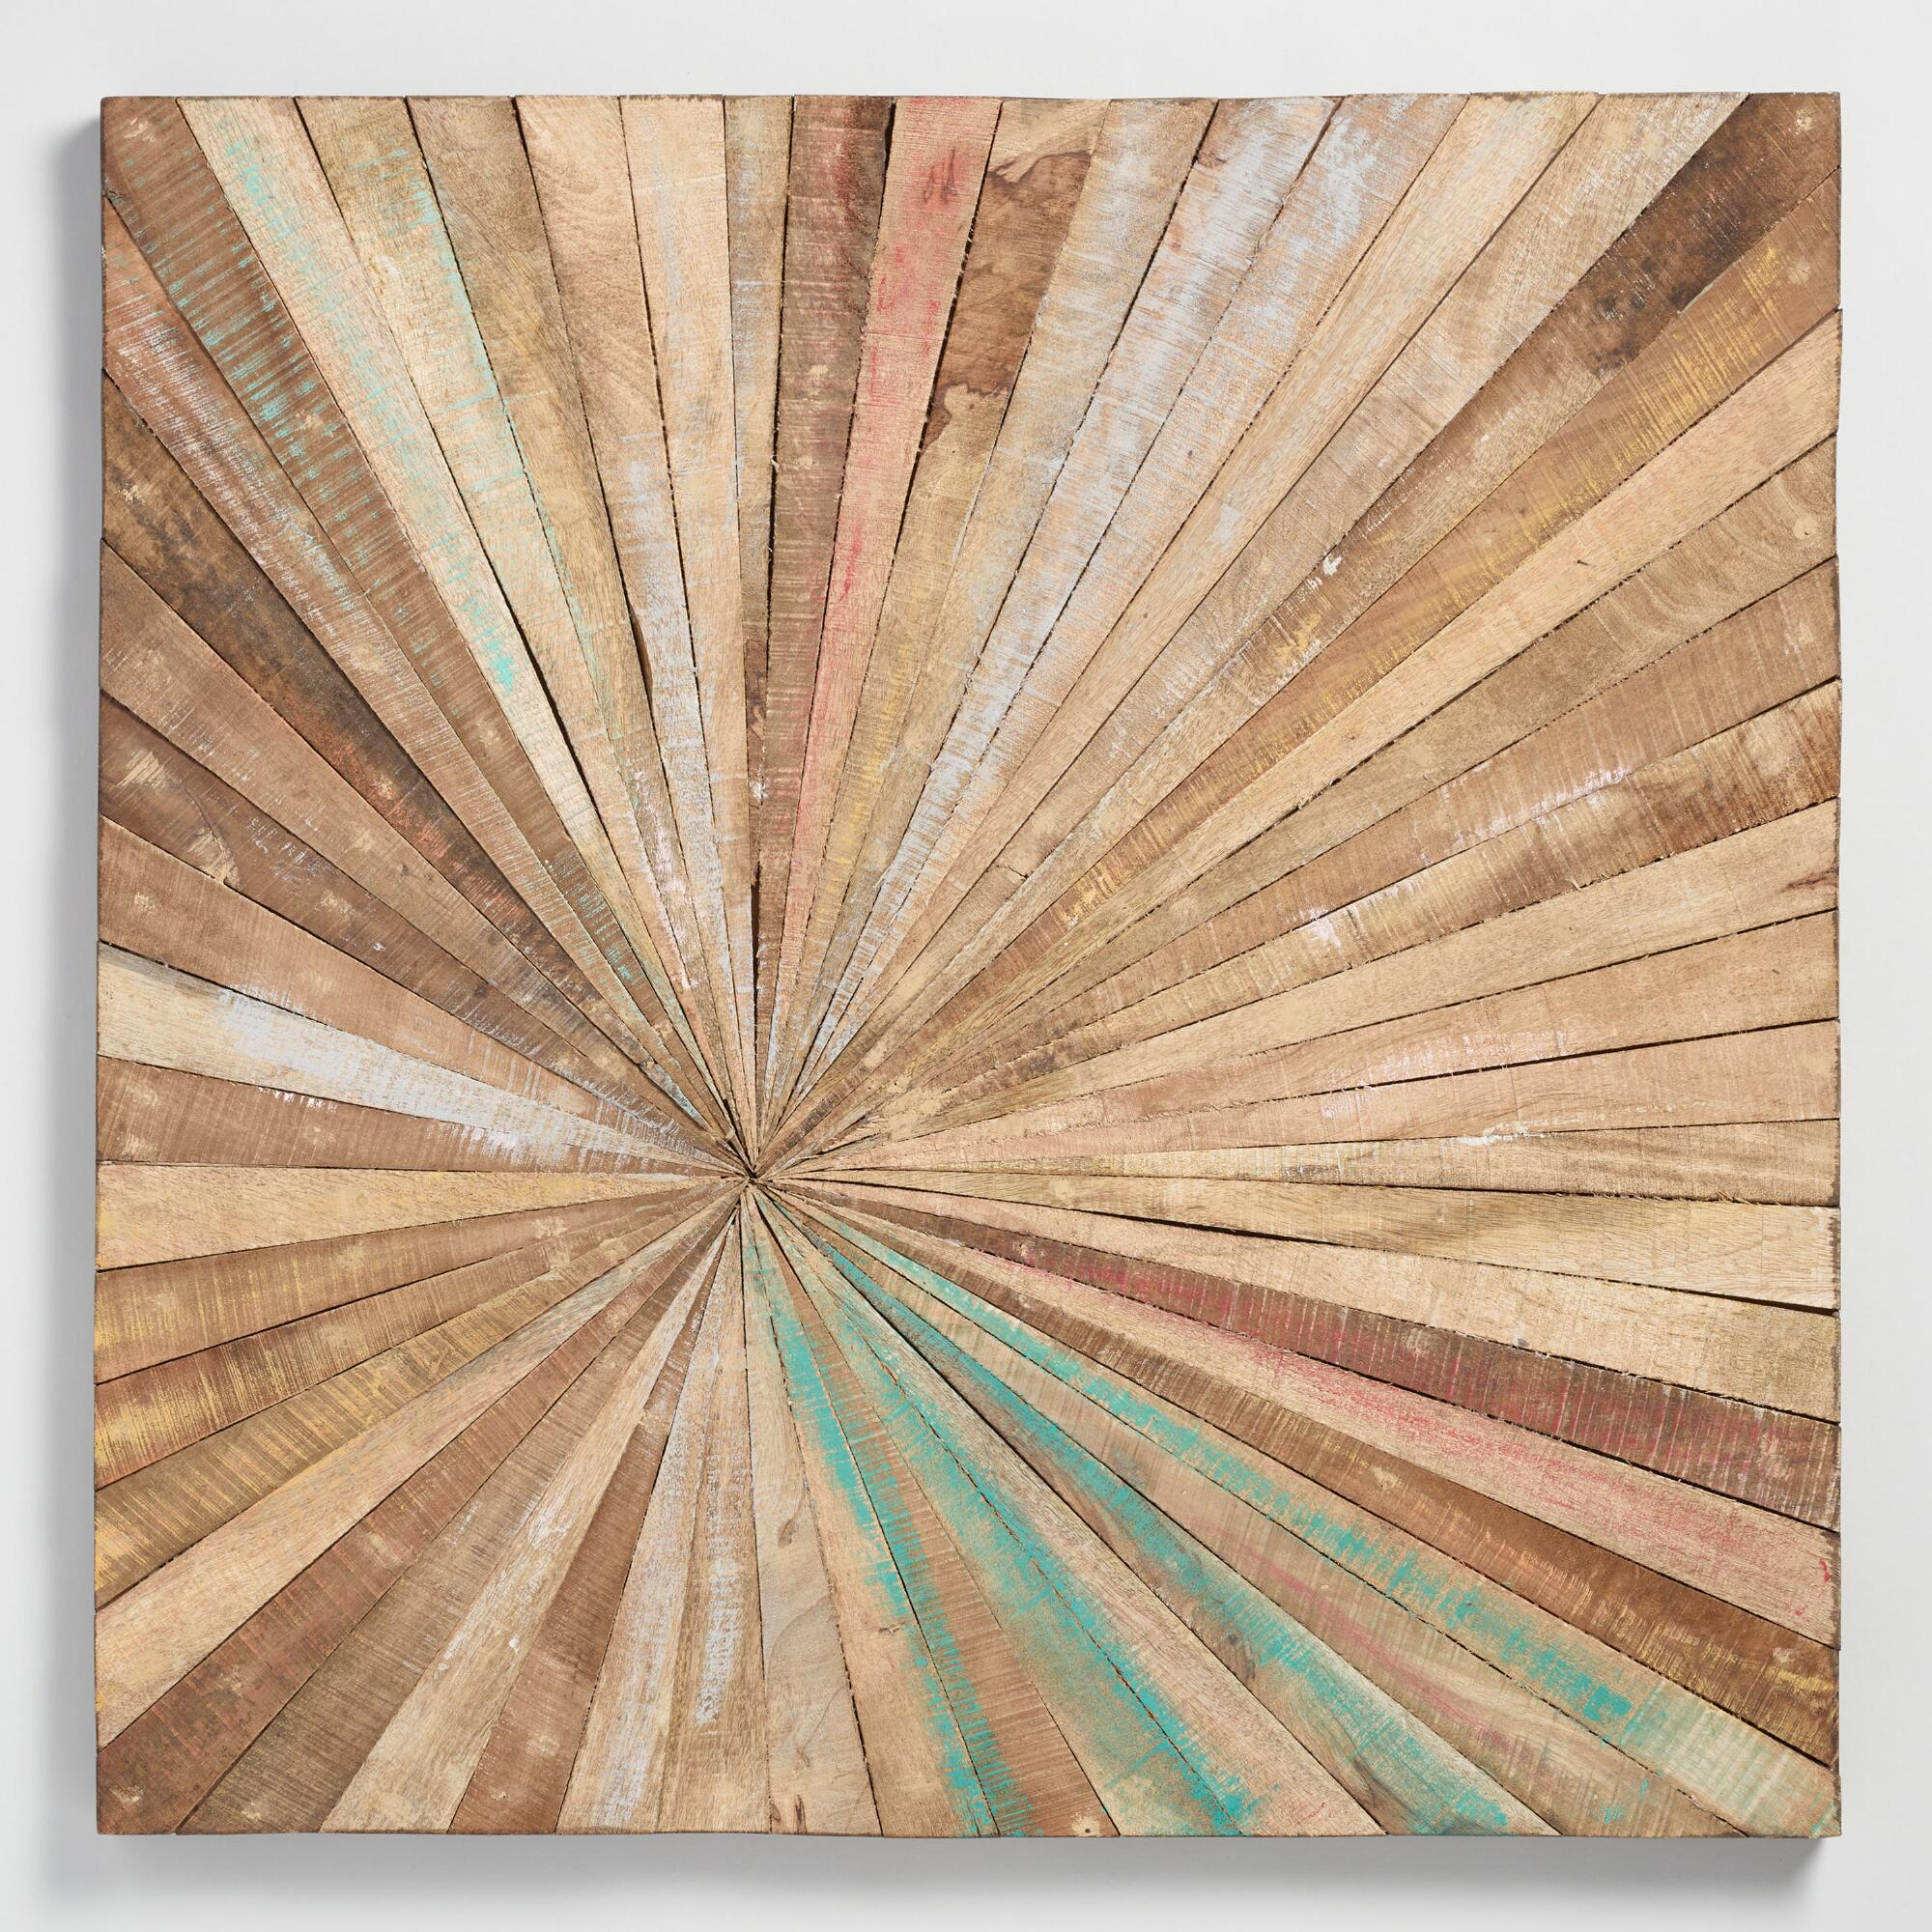 Antiqued Sunburst Wood Panel Wall Decor: Naturalworld Within Abstract Bar And Panel Wall Decor (Image 11 of 30)